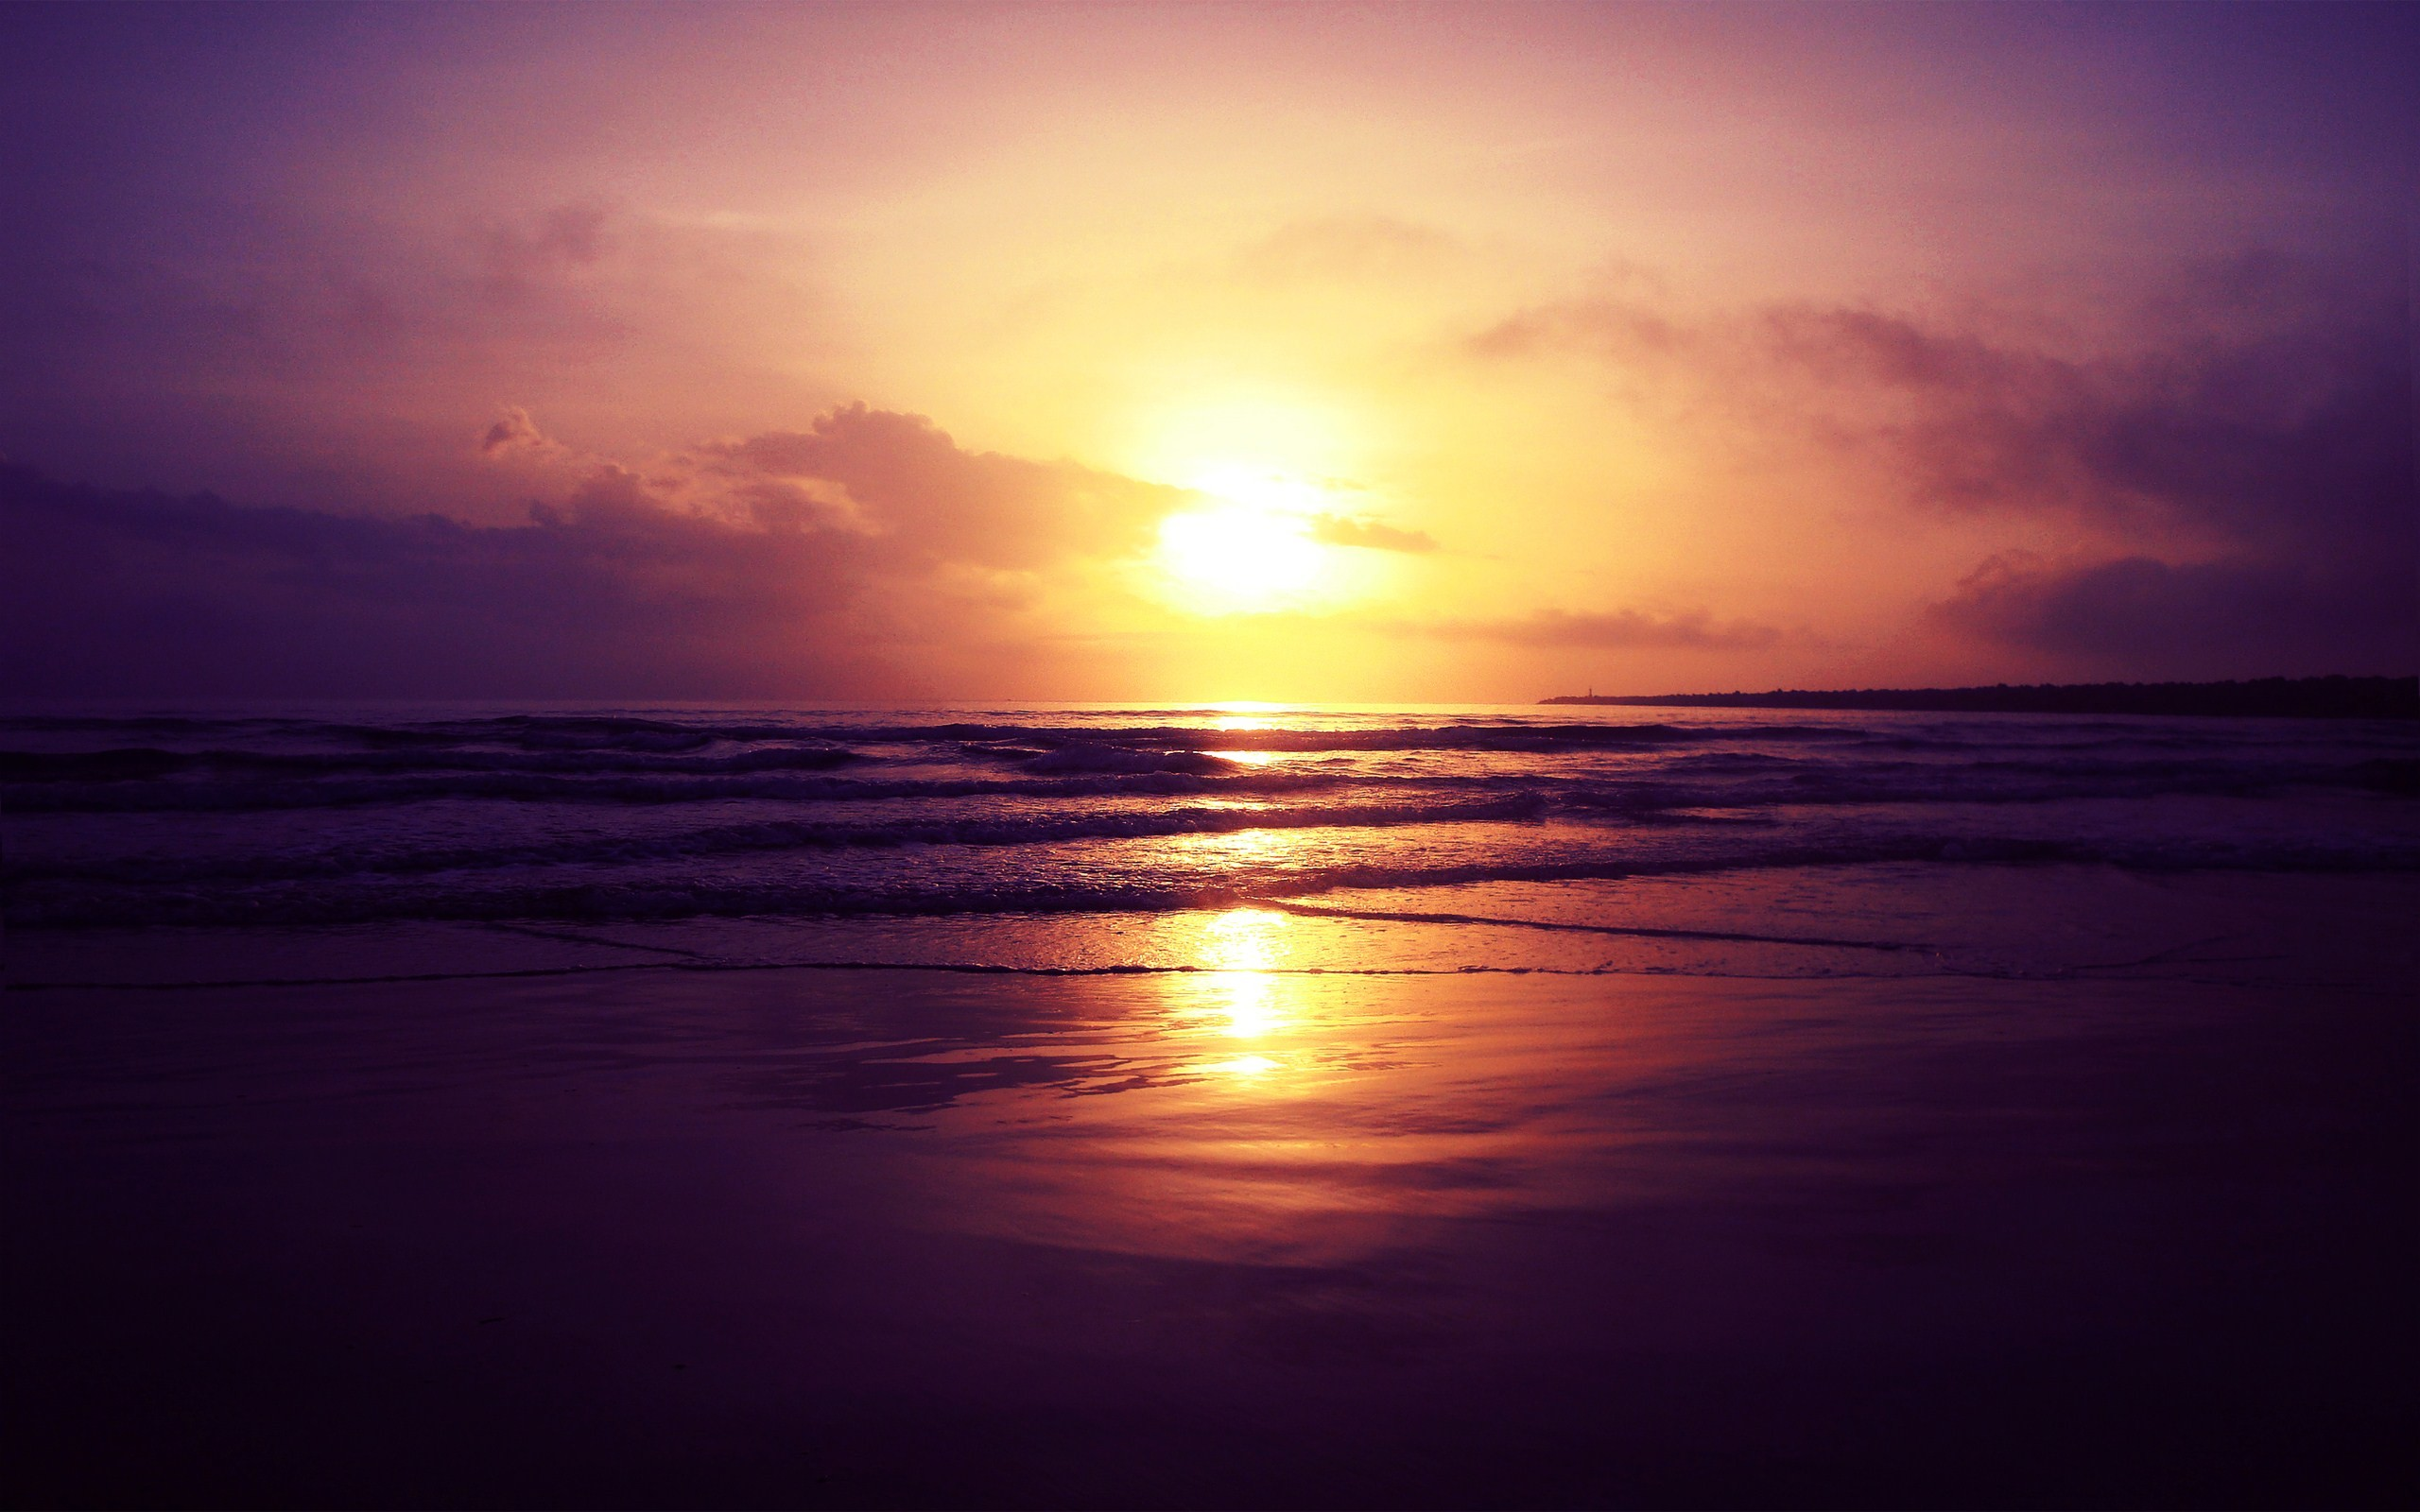 Beach Sunsets Wallpapers For Desktop 62 Images